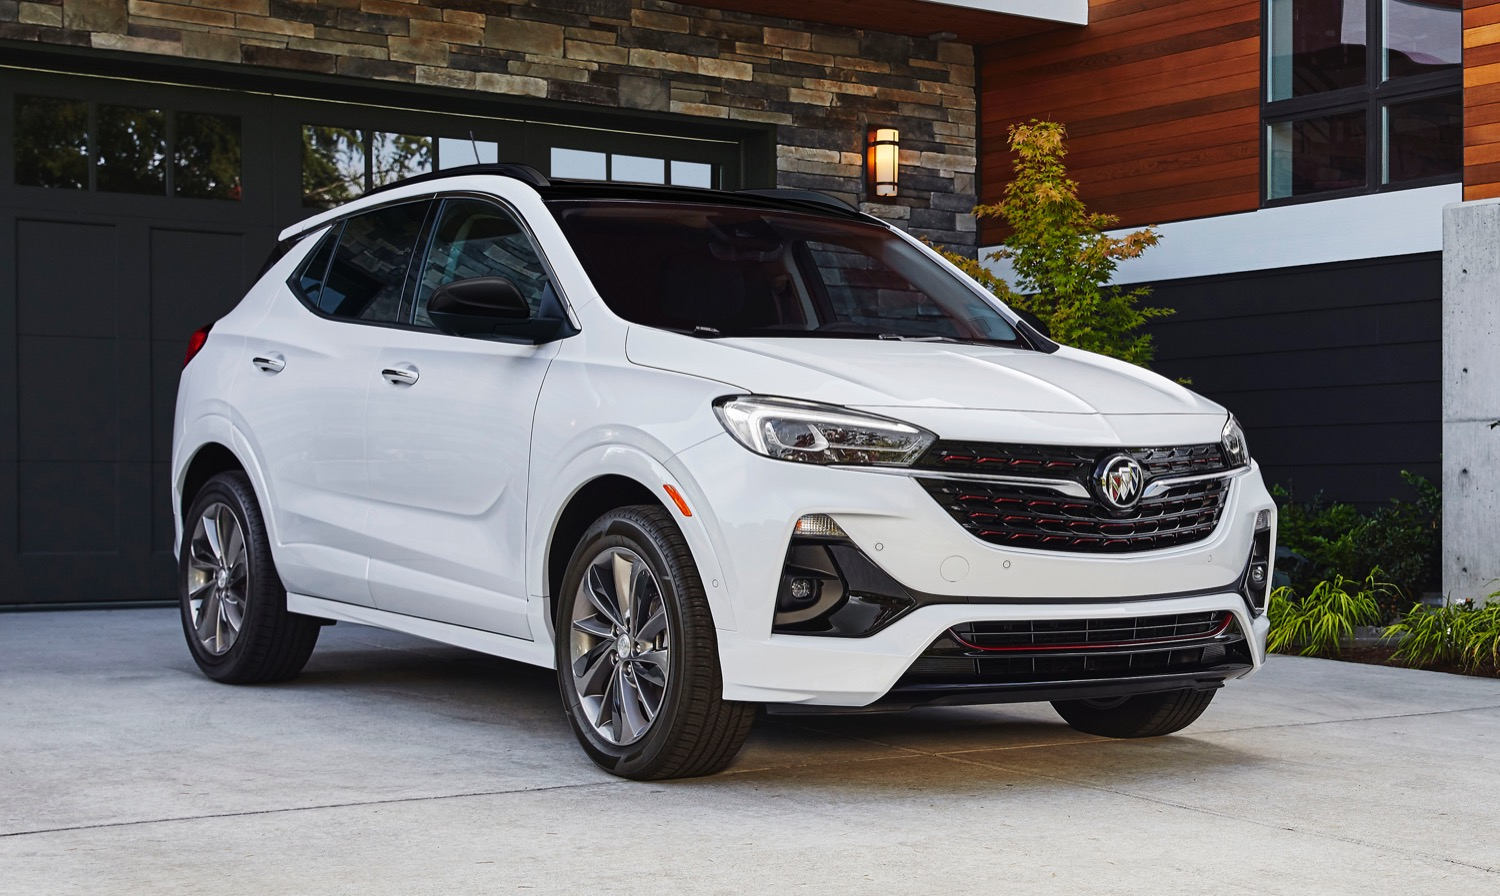 2021 Buick Encore Gx Info, Specs, Wiki | Gm Authority New 2021 Buick Encore Gx Release Date, Interior, Brochure